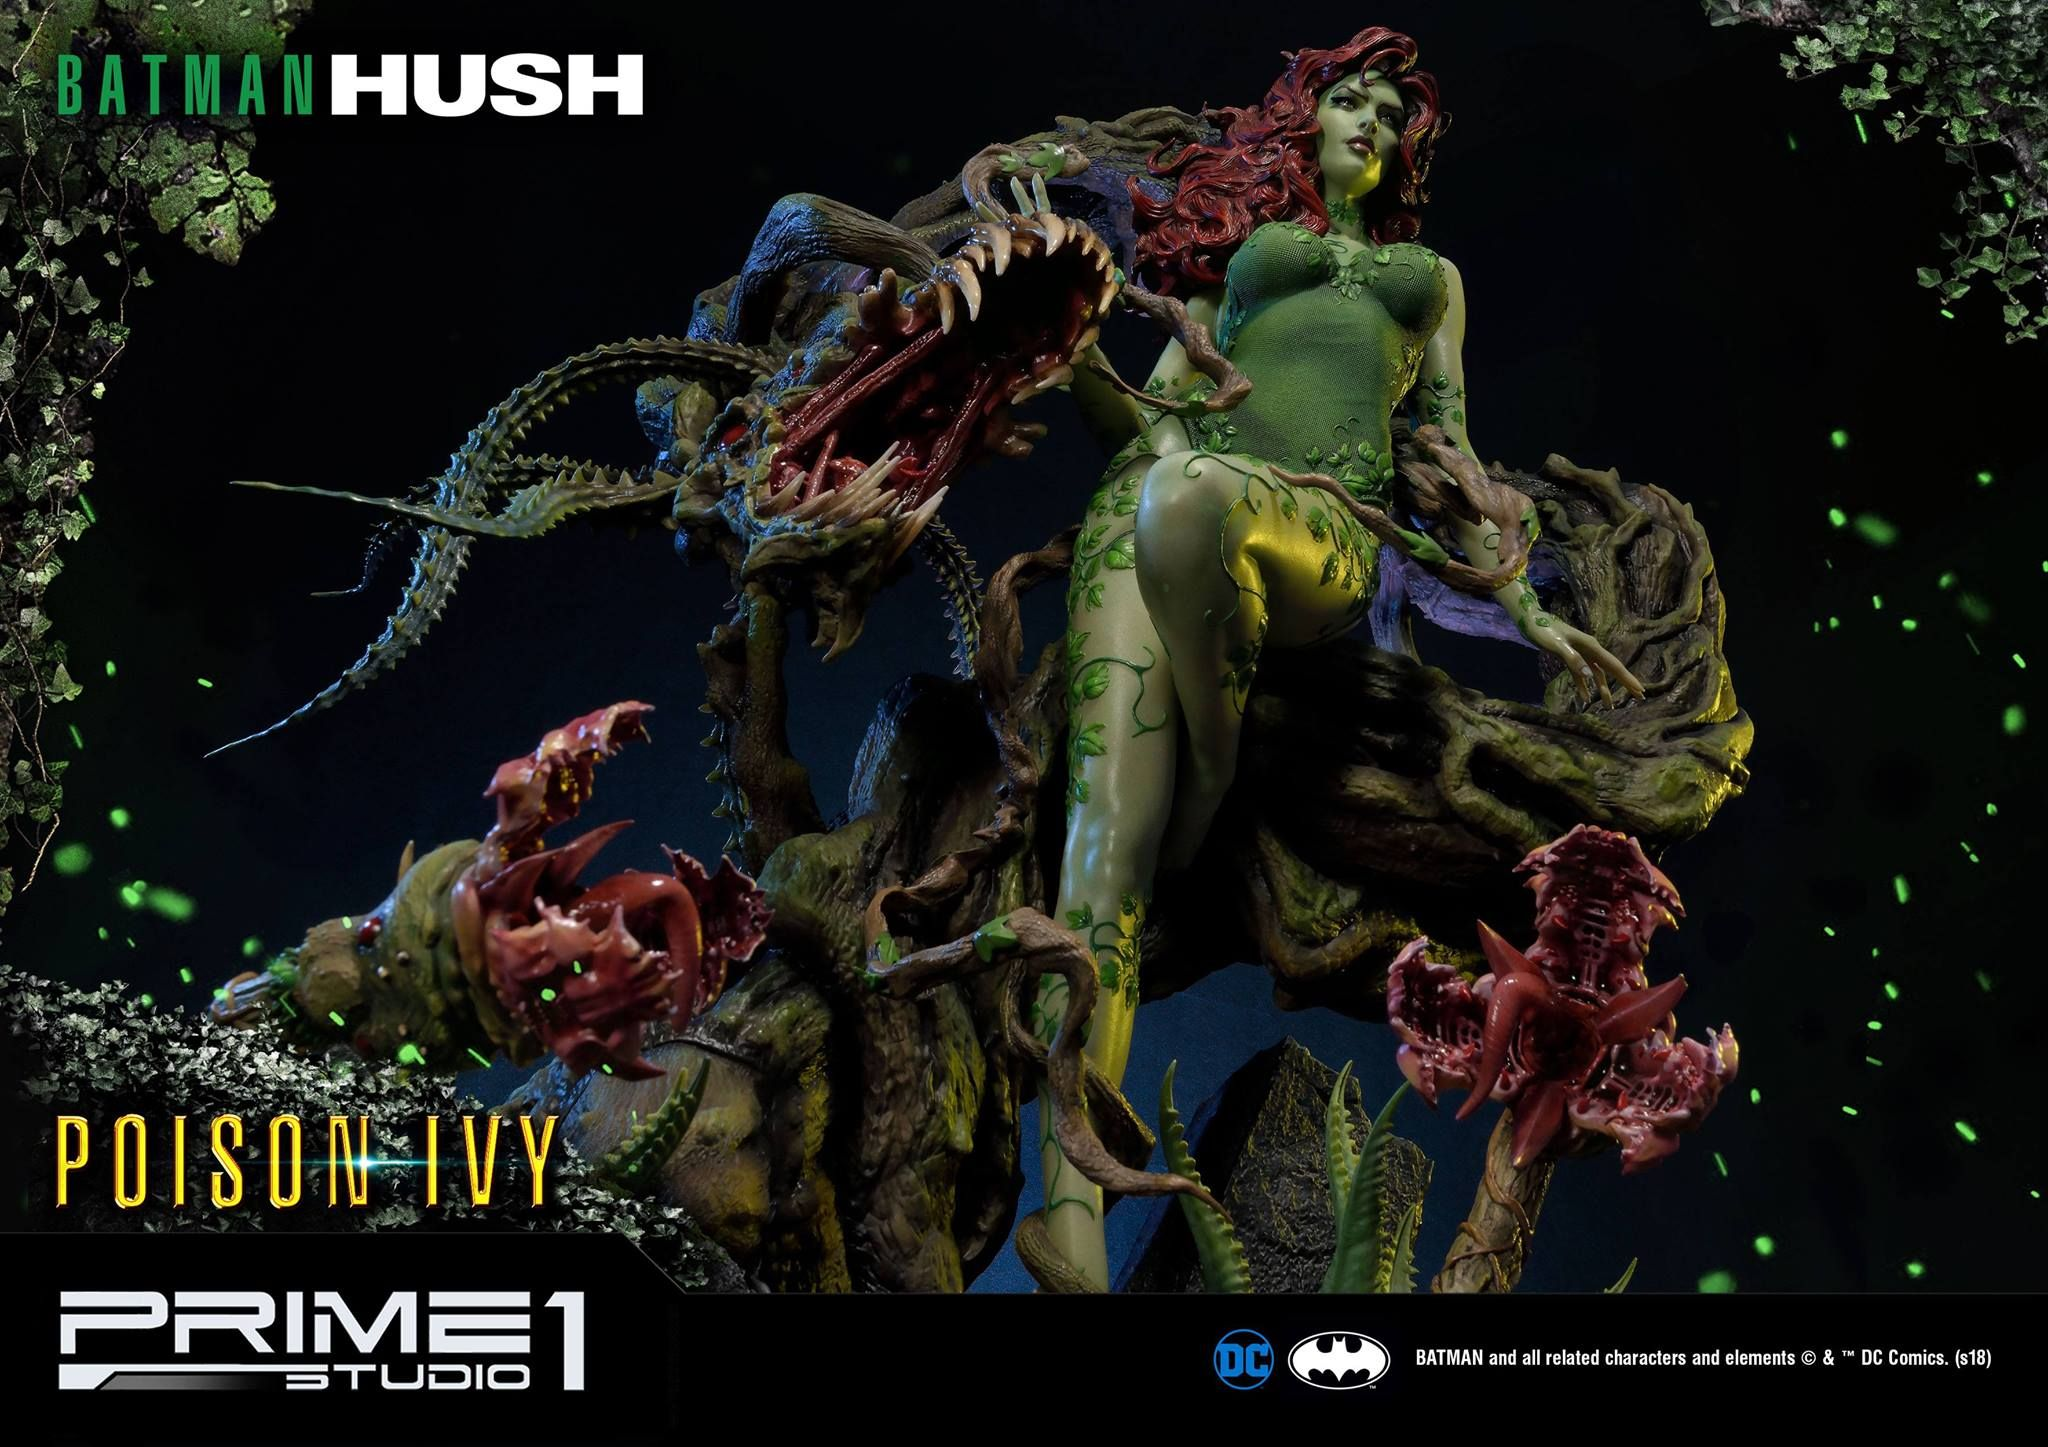 Pin By Sonesh Joshi On Poison Ivy Batman Hush Hush Hush Poison Ivy